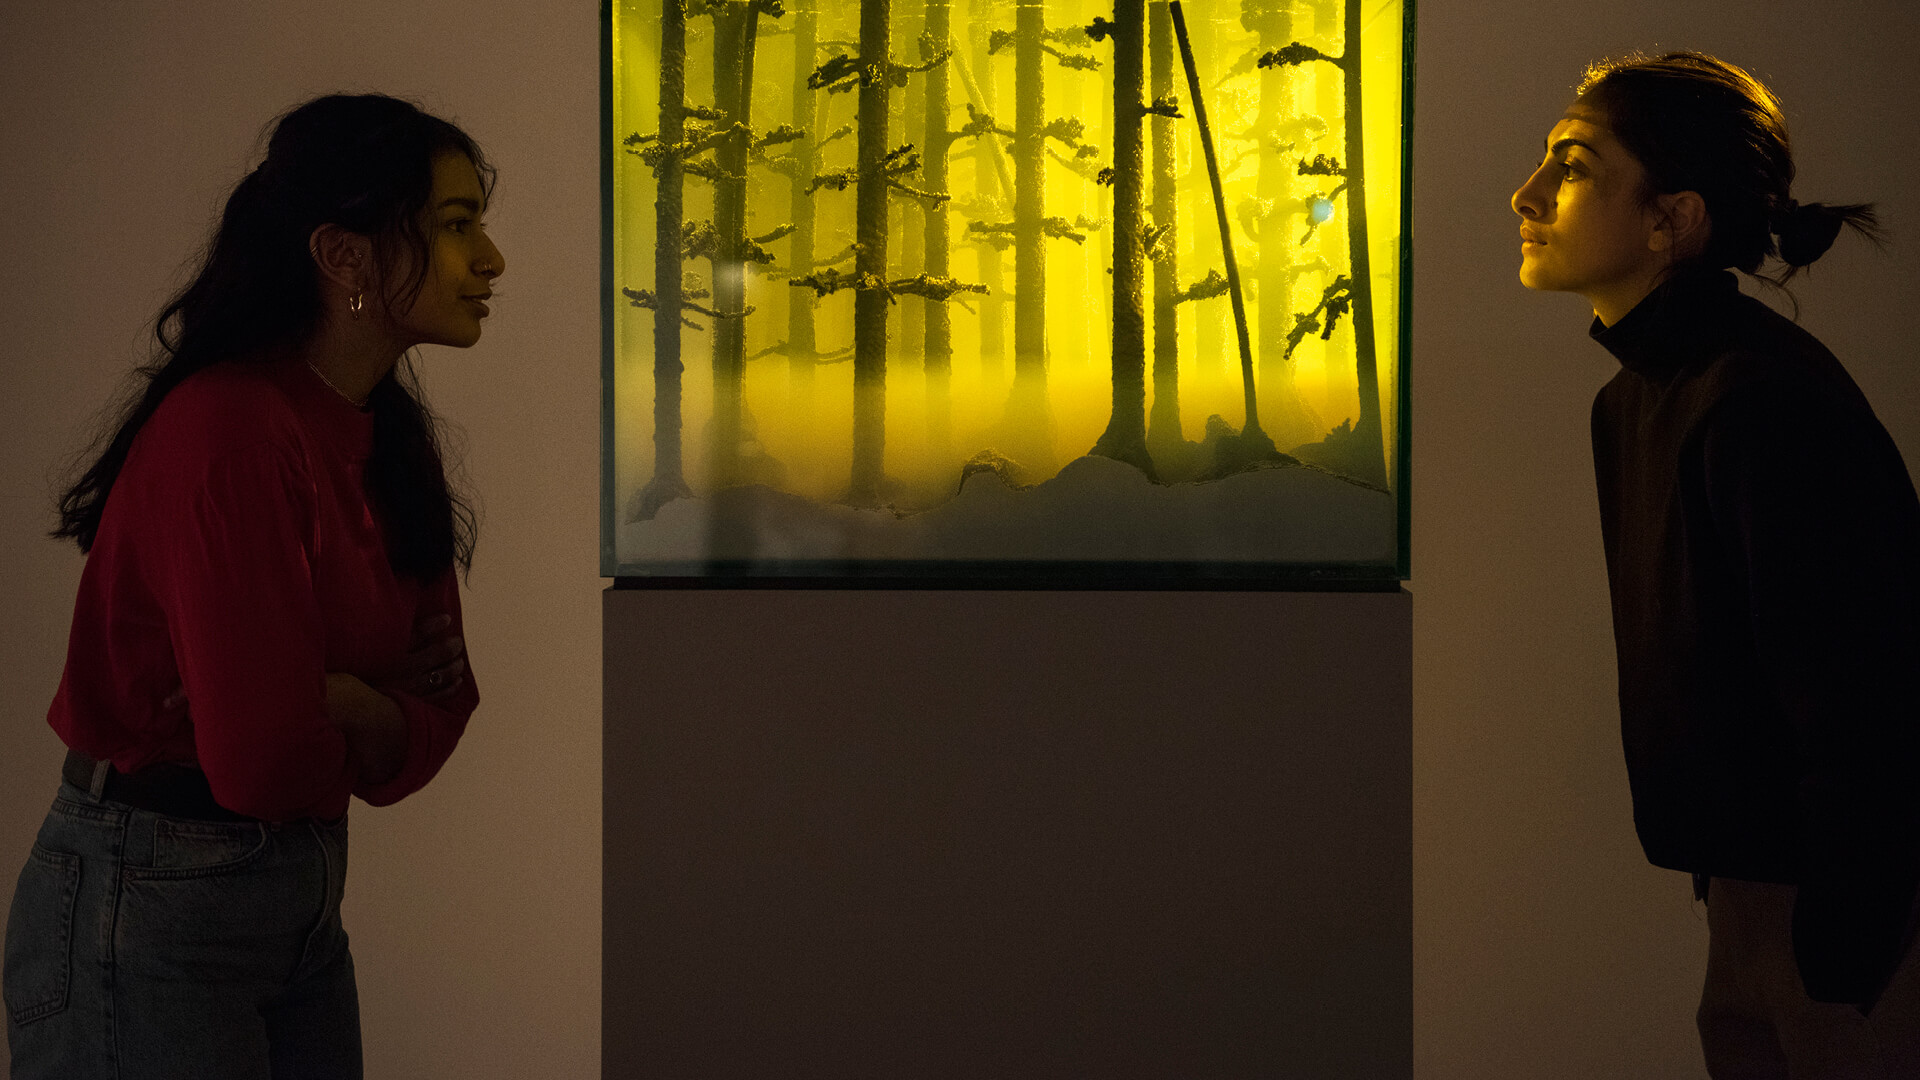 'And Then the World Changed Colour: Breathing Yellow' by Mariele Neudecker, on display at Hayward Gallery | Among The Trees | Hayward Gallery | STIRworld